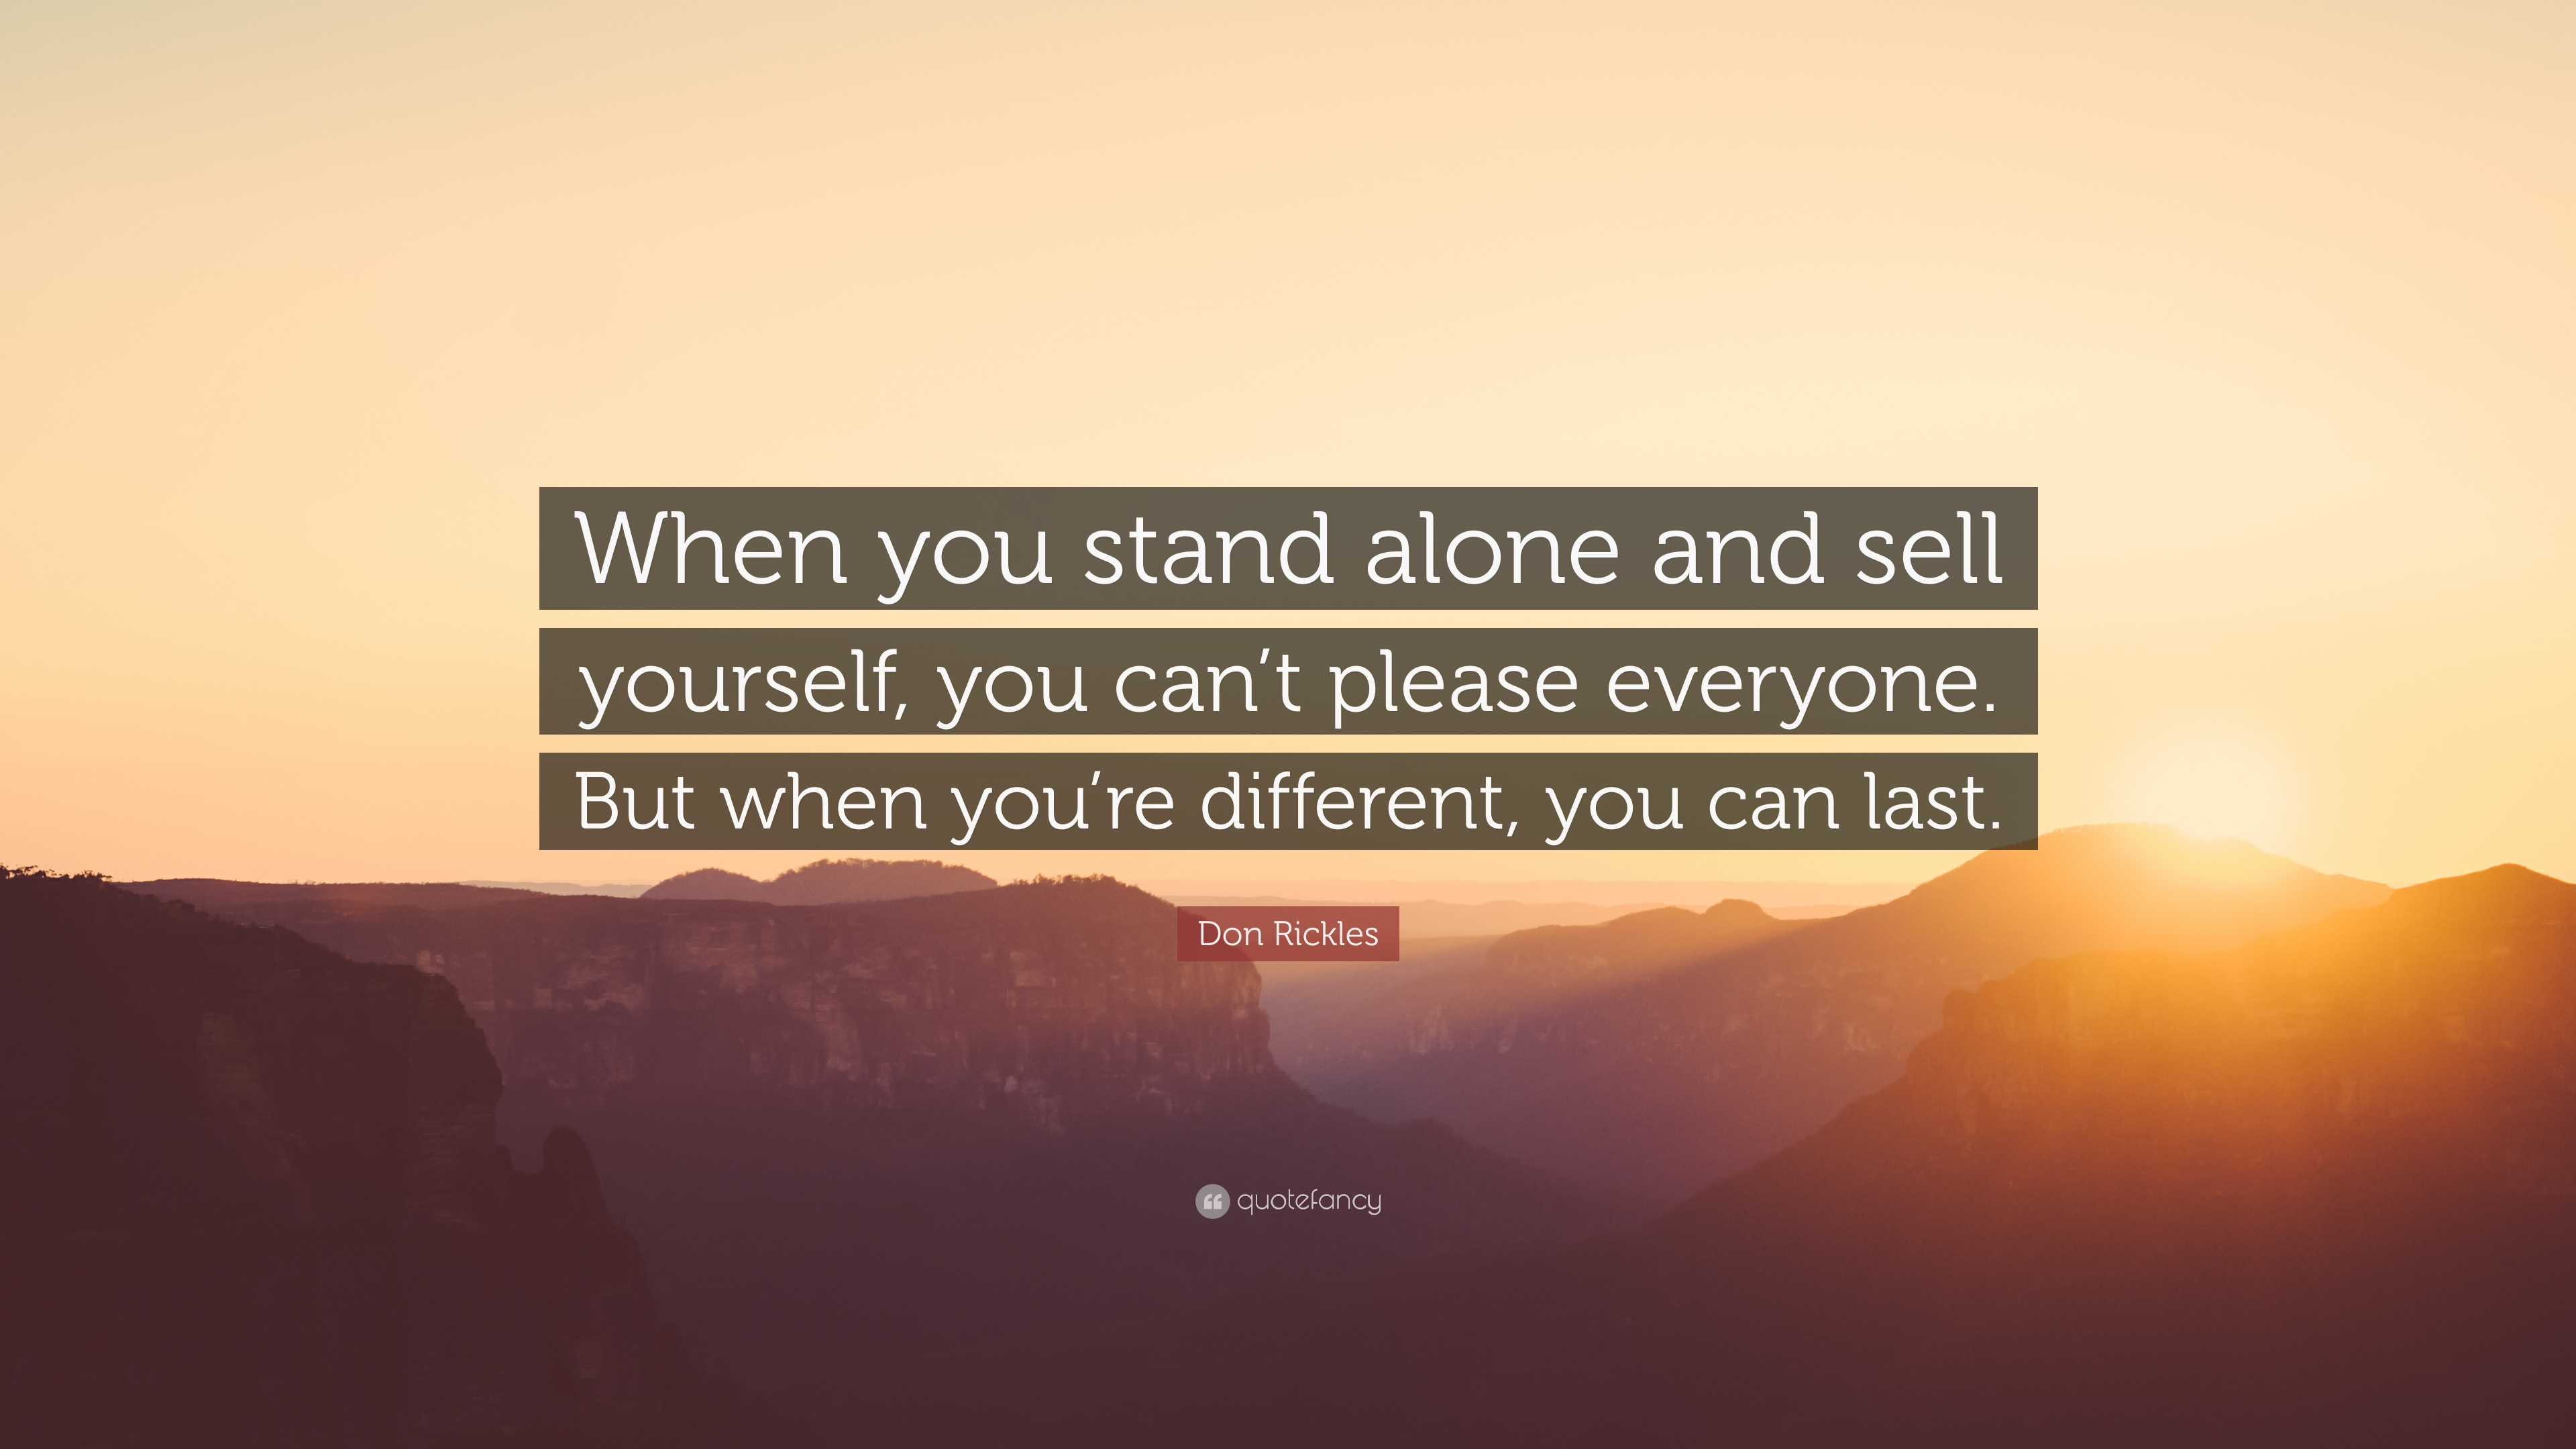 Don Rickles Quote When You Stand Alone And Sell Yourself You Can